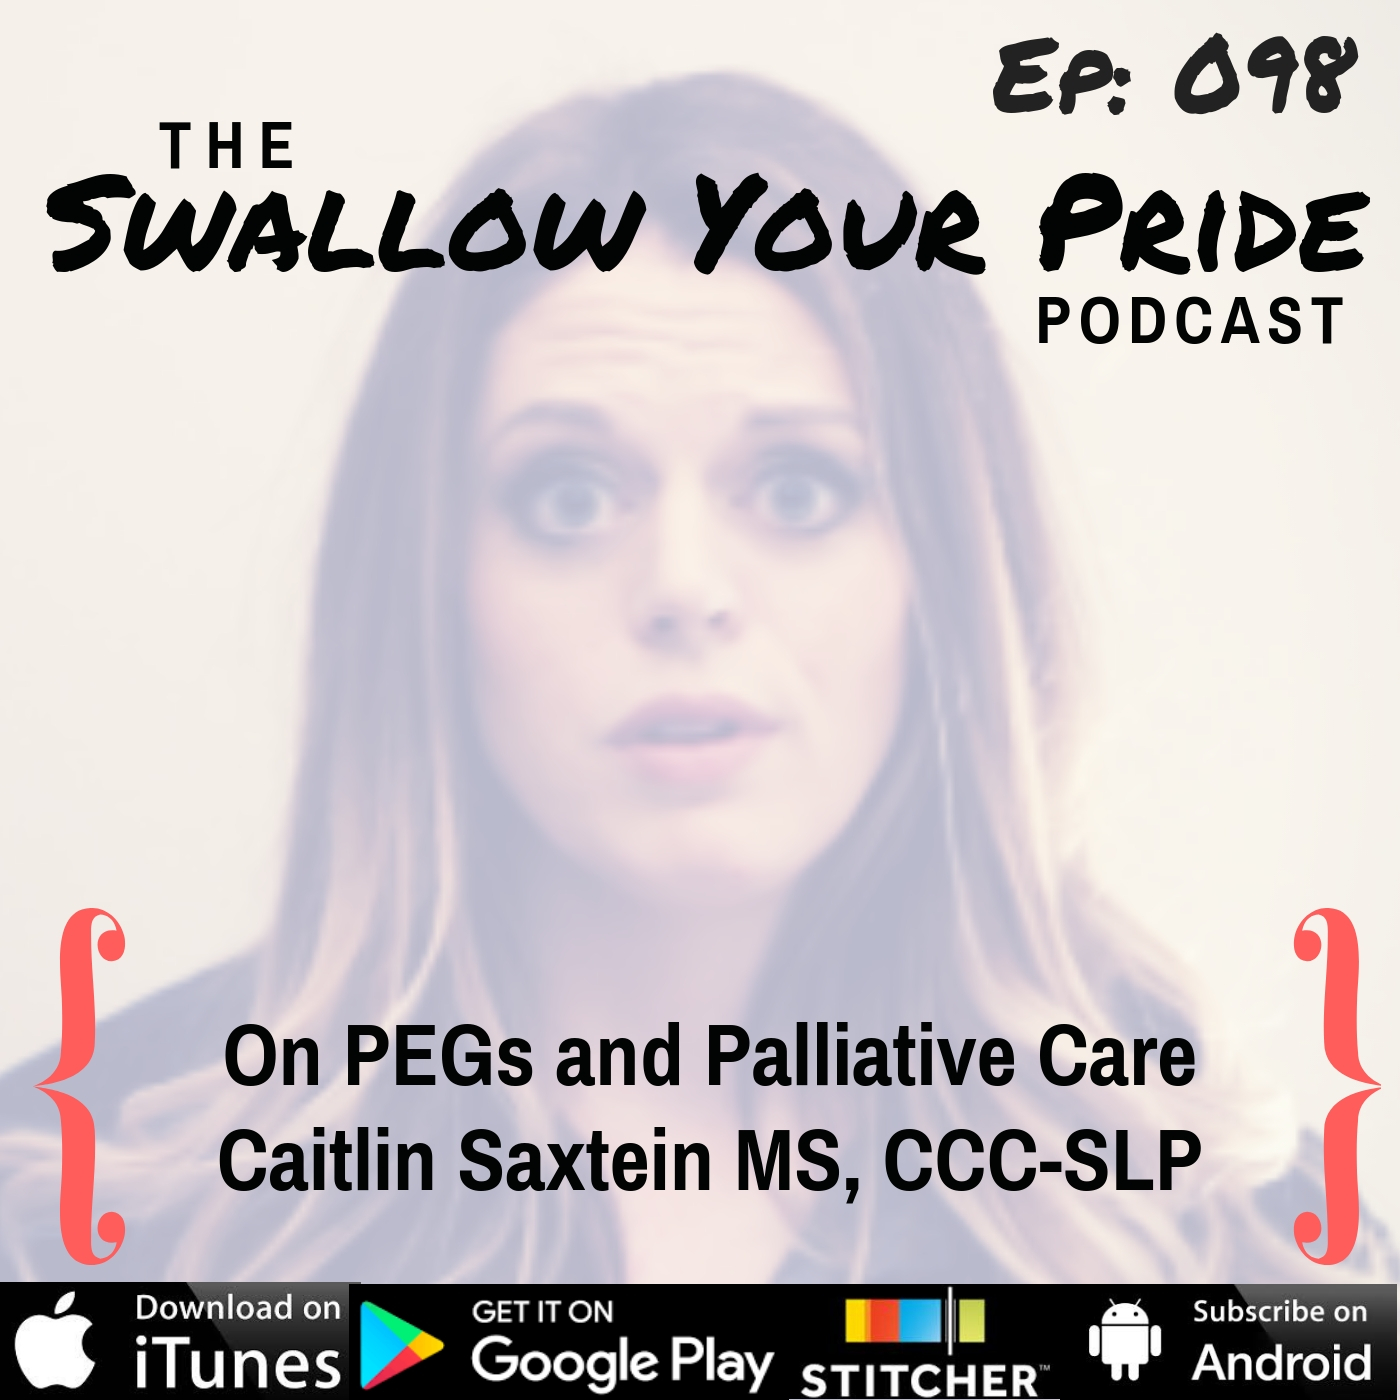 098 – Caitlin Saxtein MS, CCC-SLP – On PEGs and Palliative Care